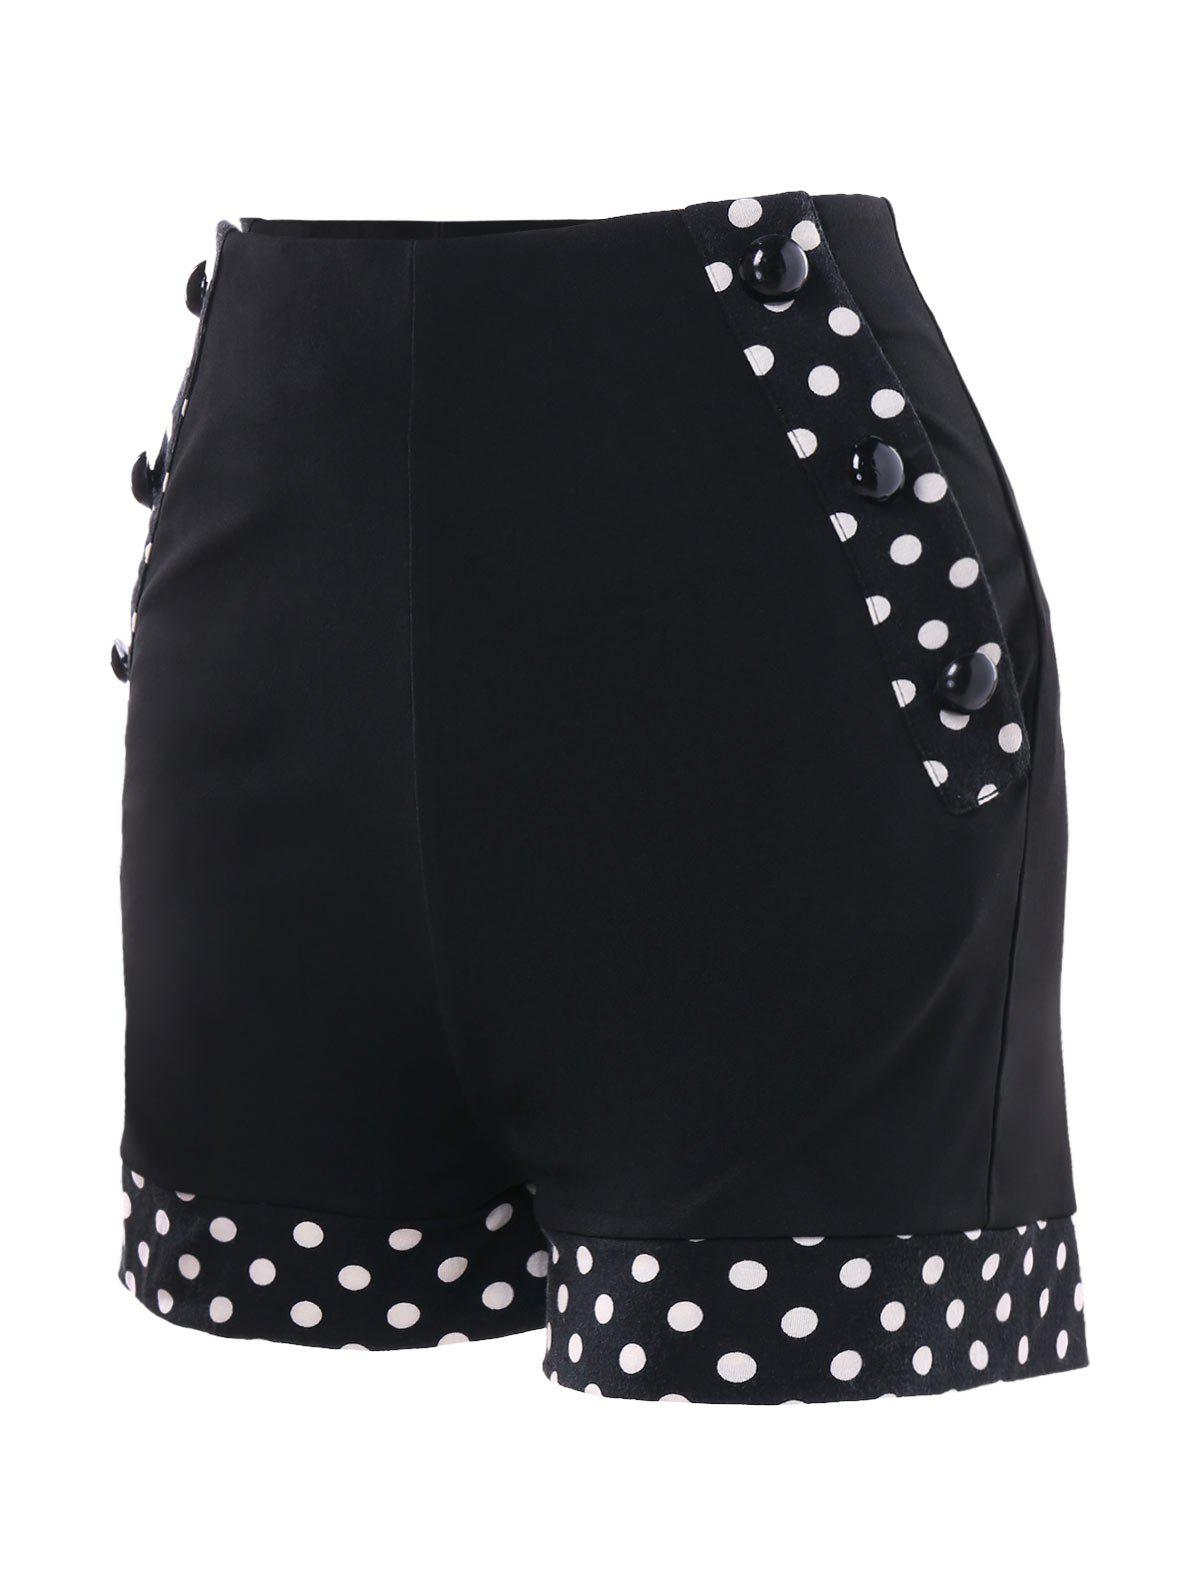 Discount Polka Dot High Waisted Shorts